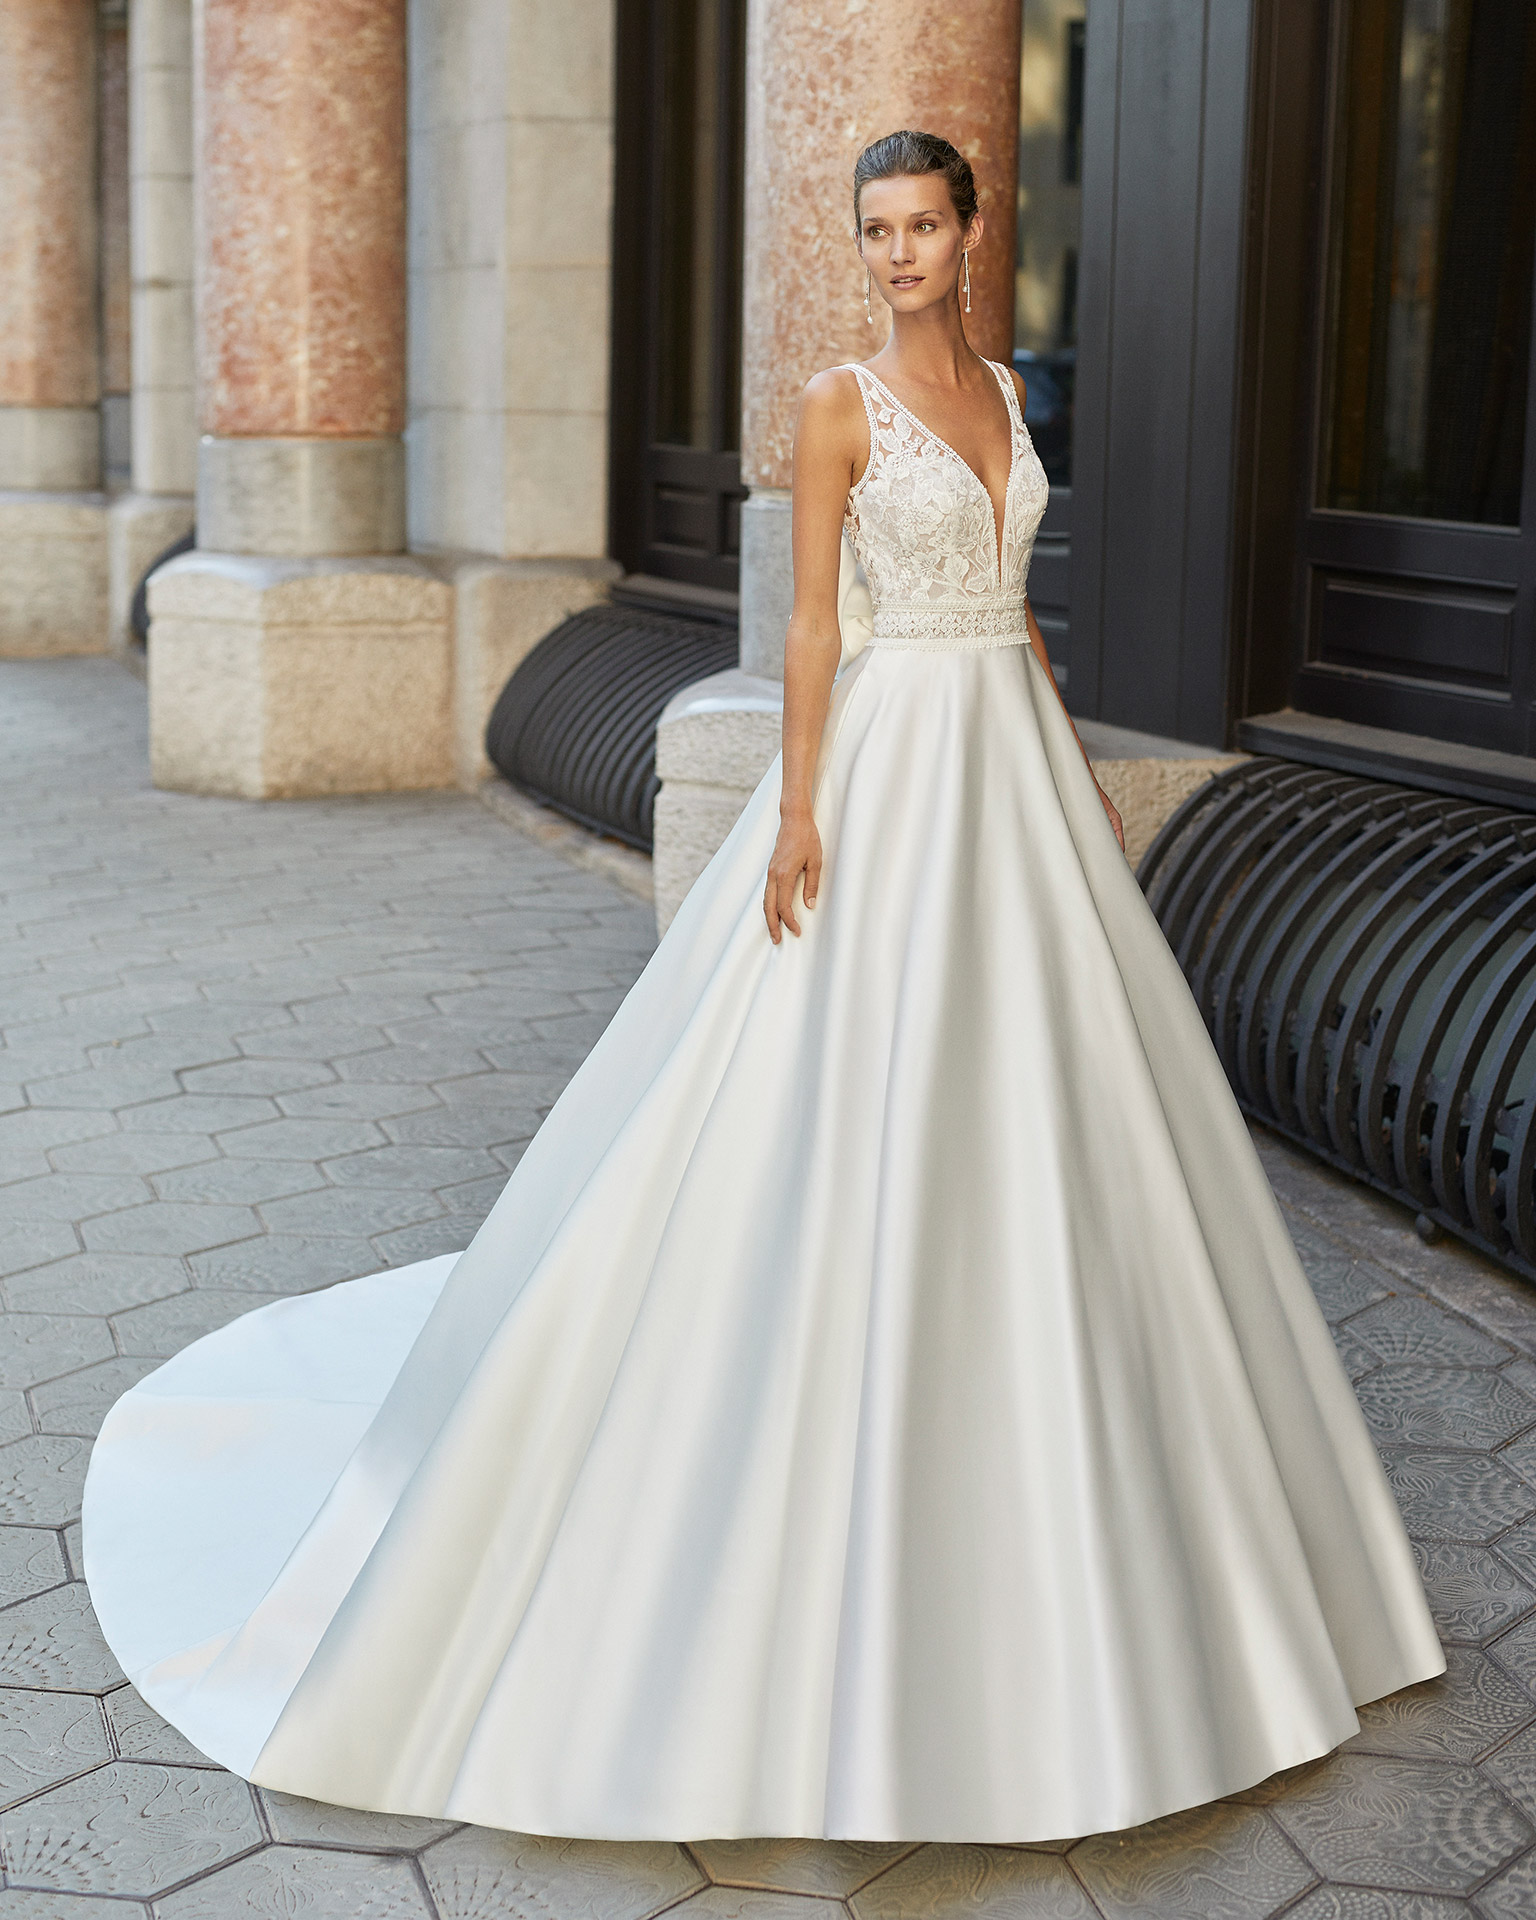 Classic wedding dress, satin, beaded lace. Deep-plunge neckline and low back. 2022  Collection.